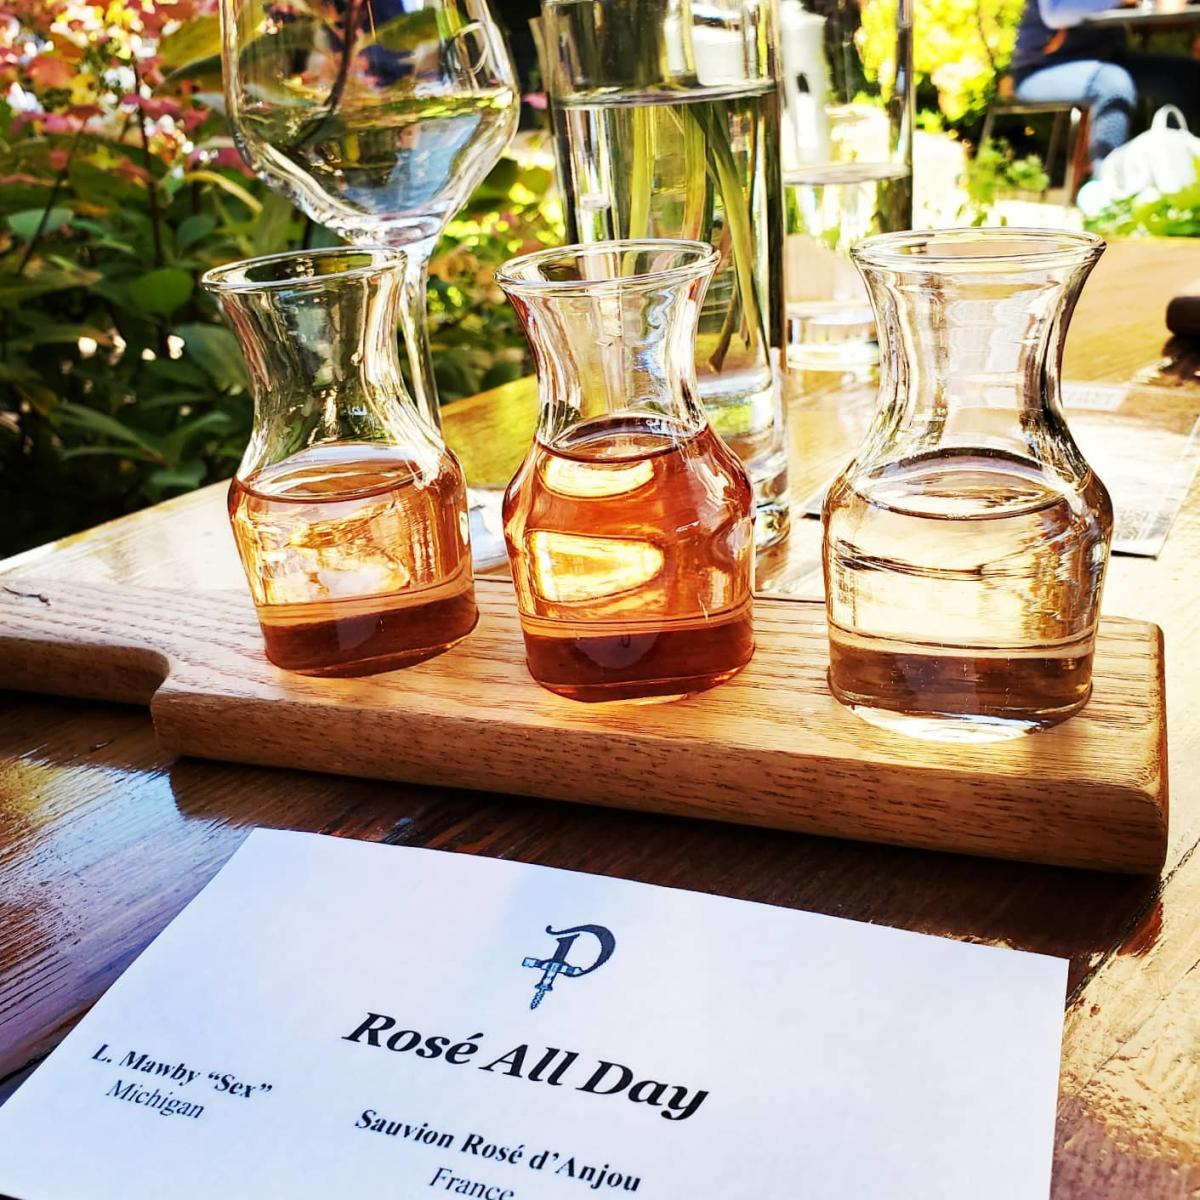 Rose All Day wine flight on the patio at Prost Wine Bar & Charcuterie in Frankenmuth